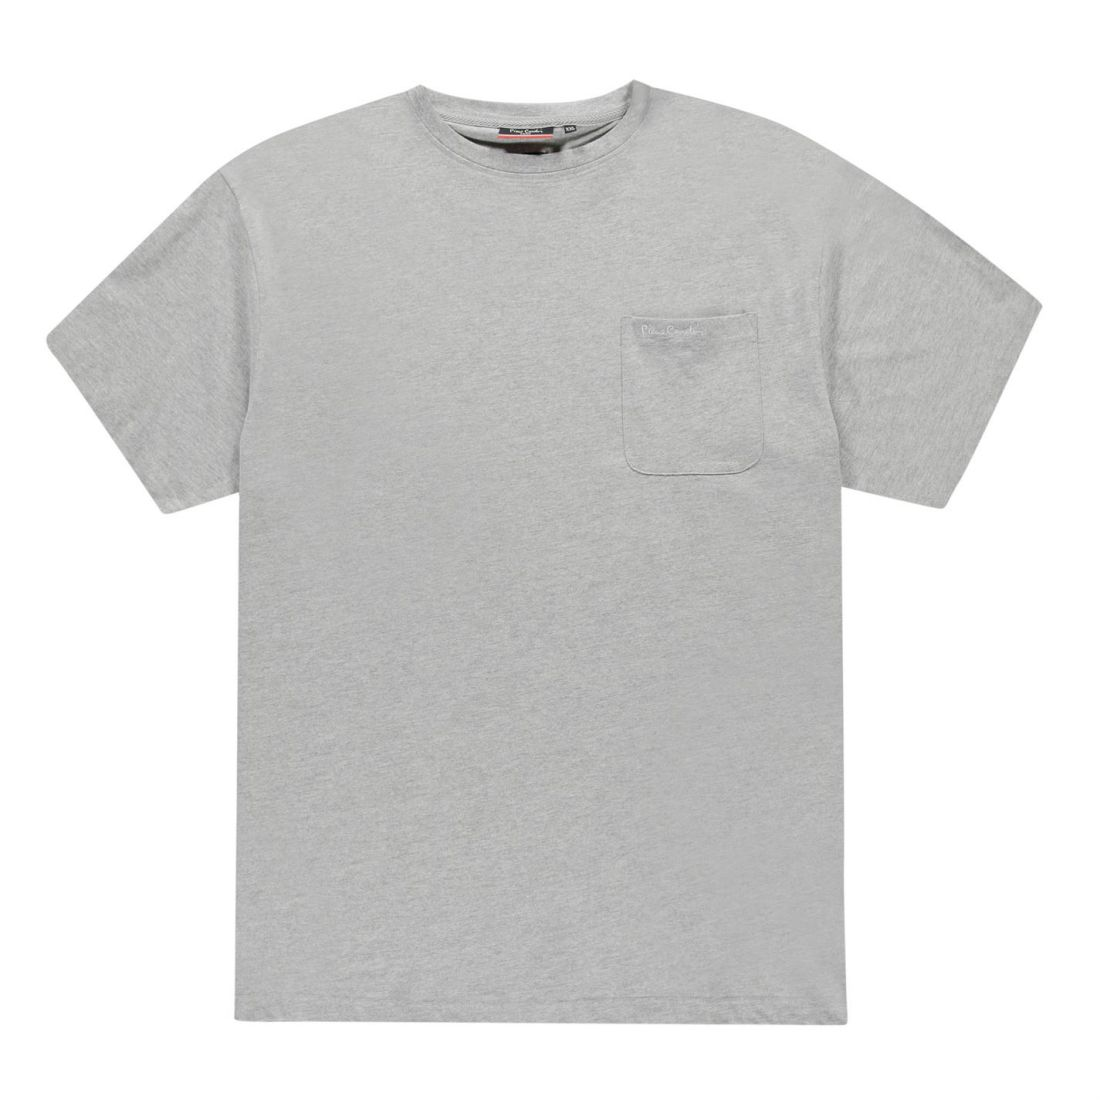 Pierre-Cardin-Mens-ExtraLarge-Single-Pocket-T-Shirt-Crew-Neck-Tee-Top-Short thumbnail 15